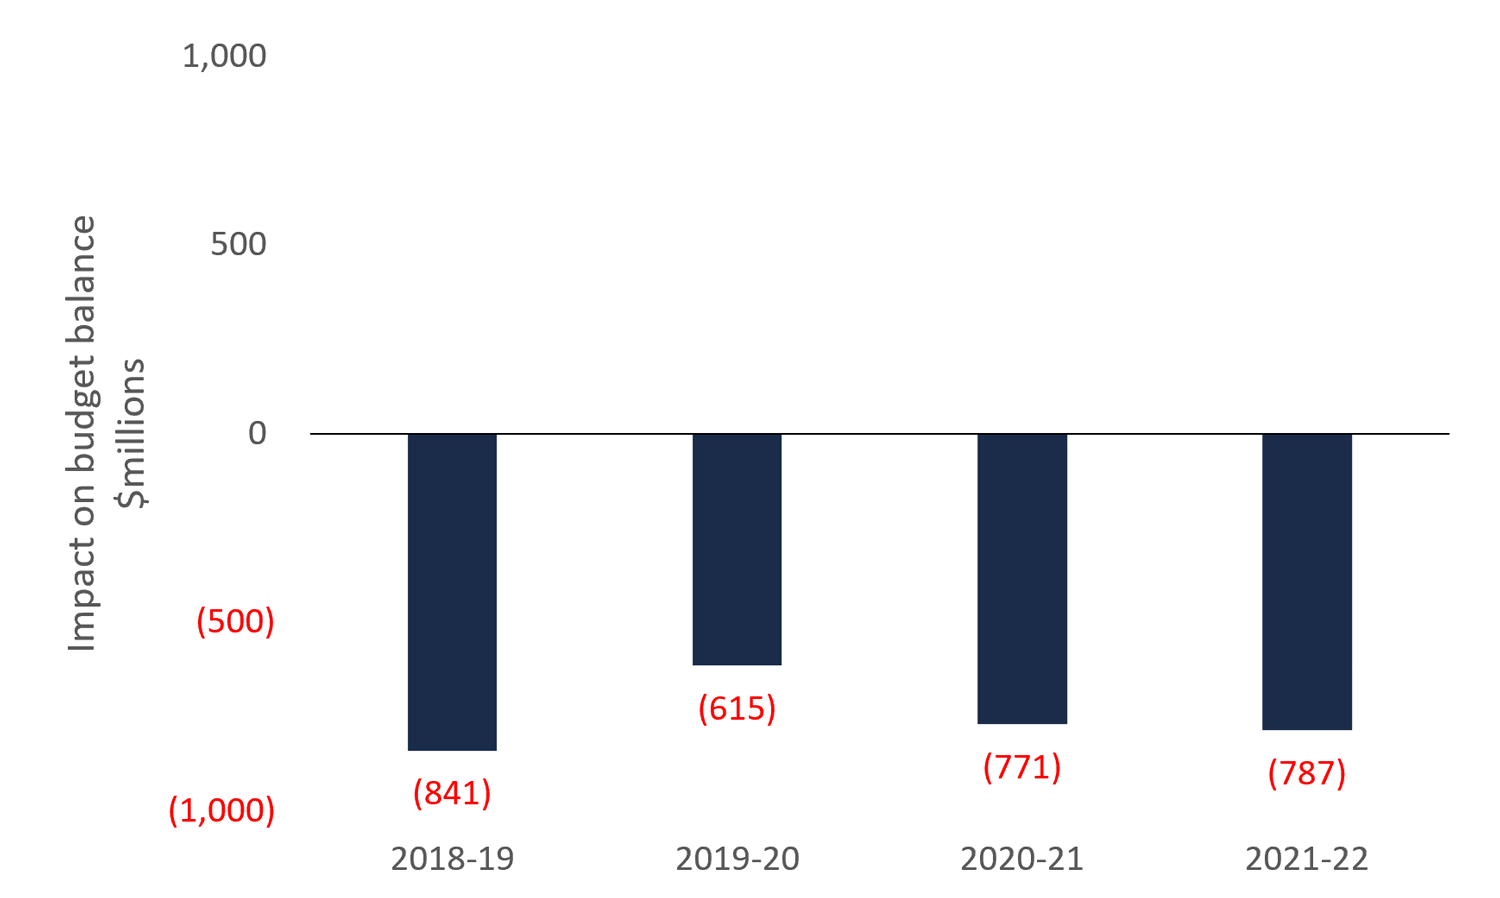 Estimated impact on the Province's budget balance from ending the cap and trade program, 2018-19 to 2021-22